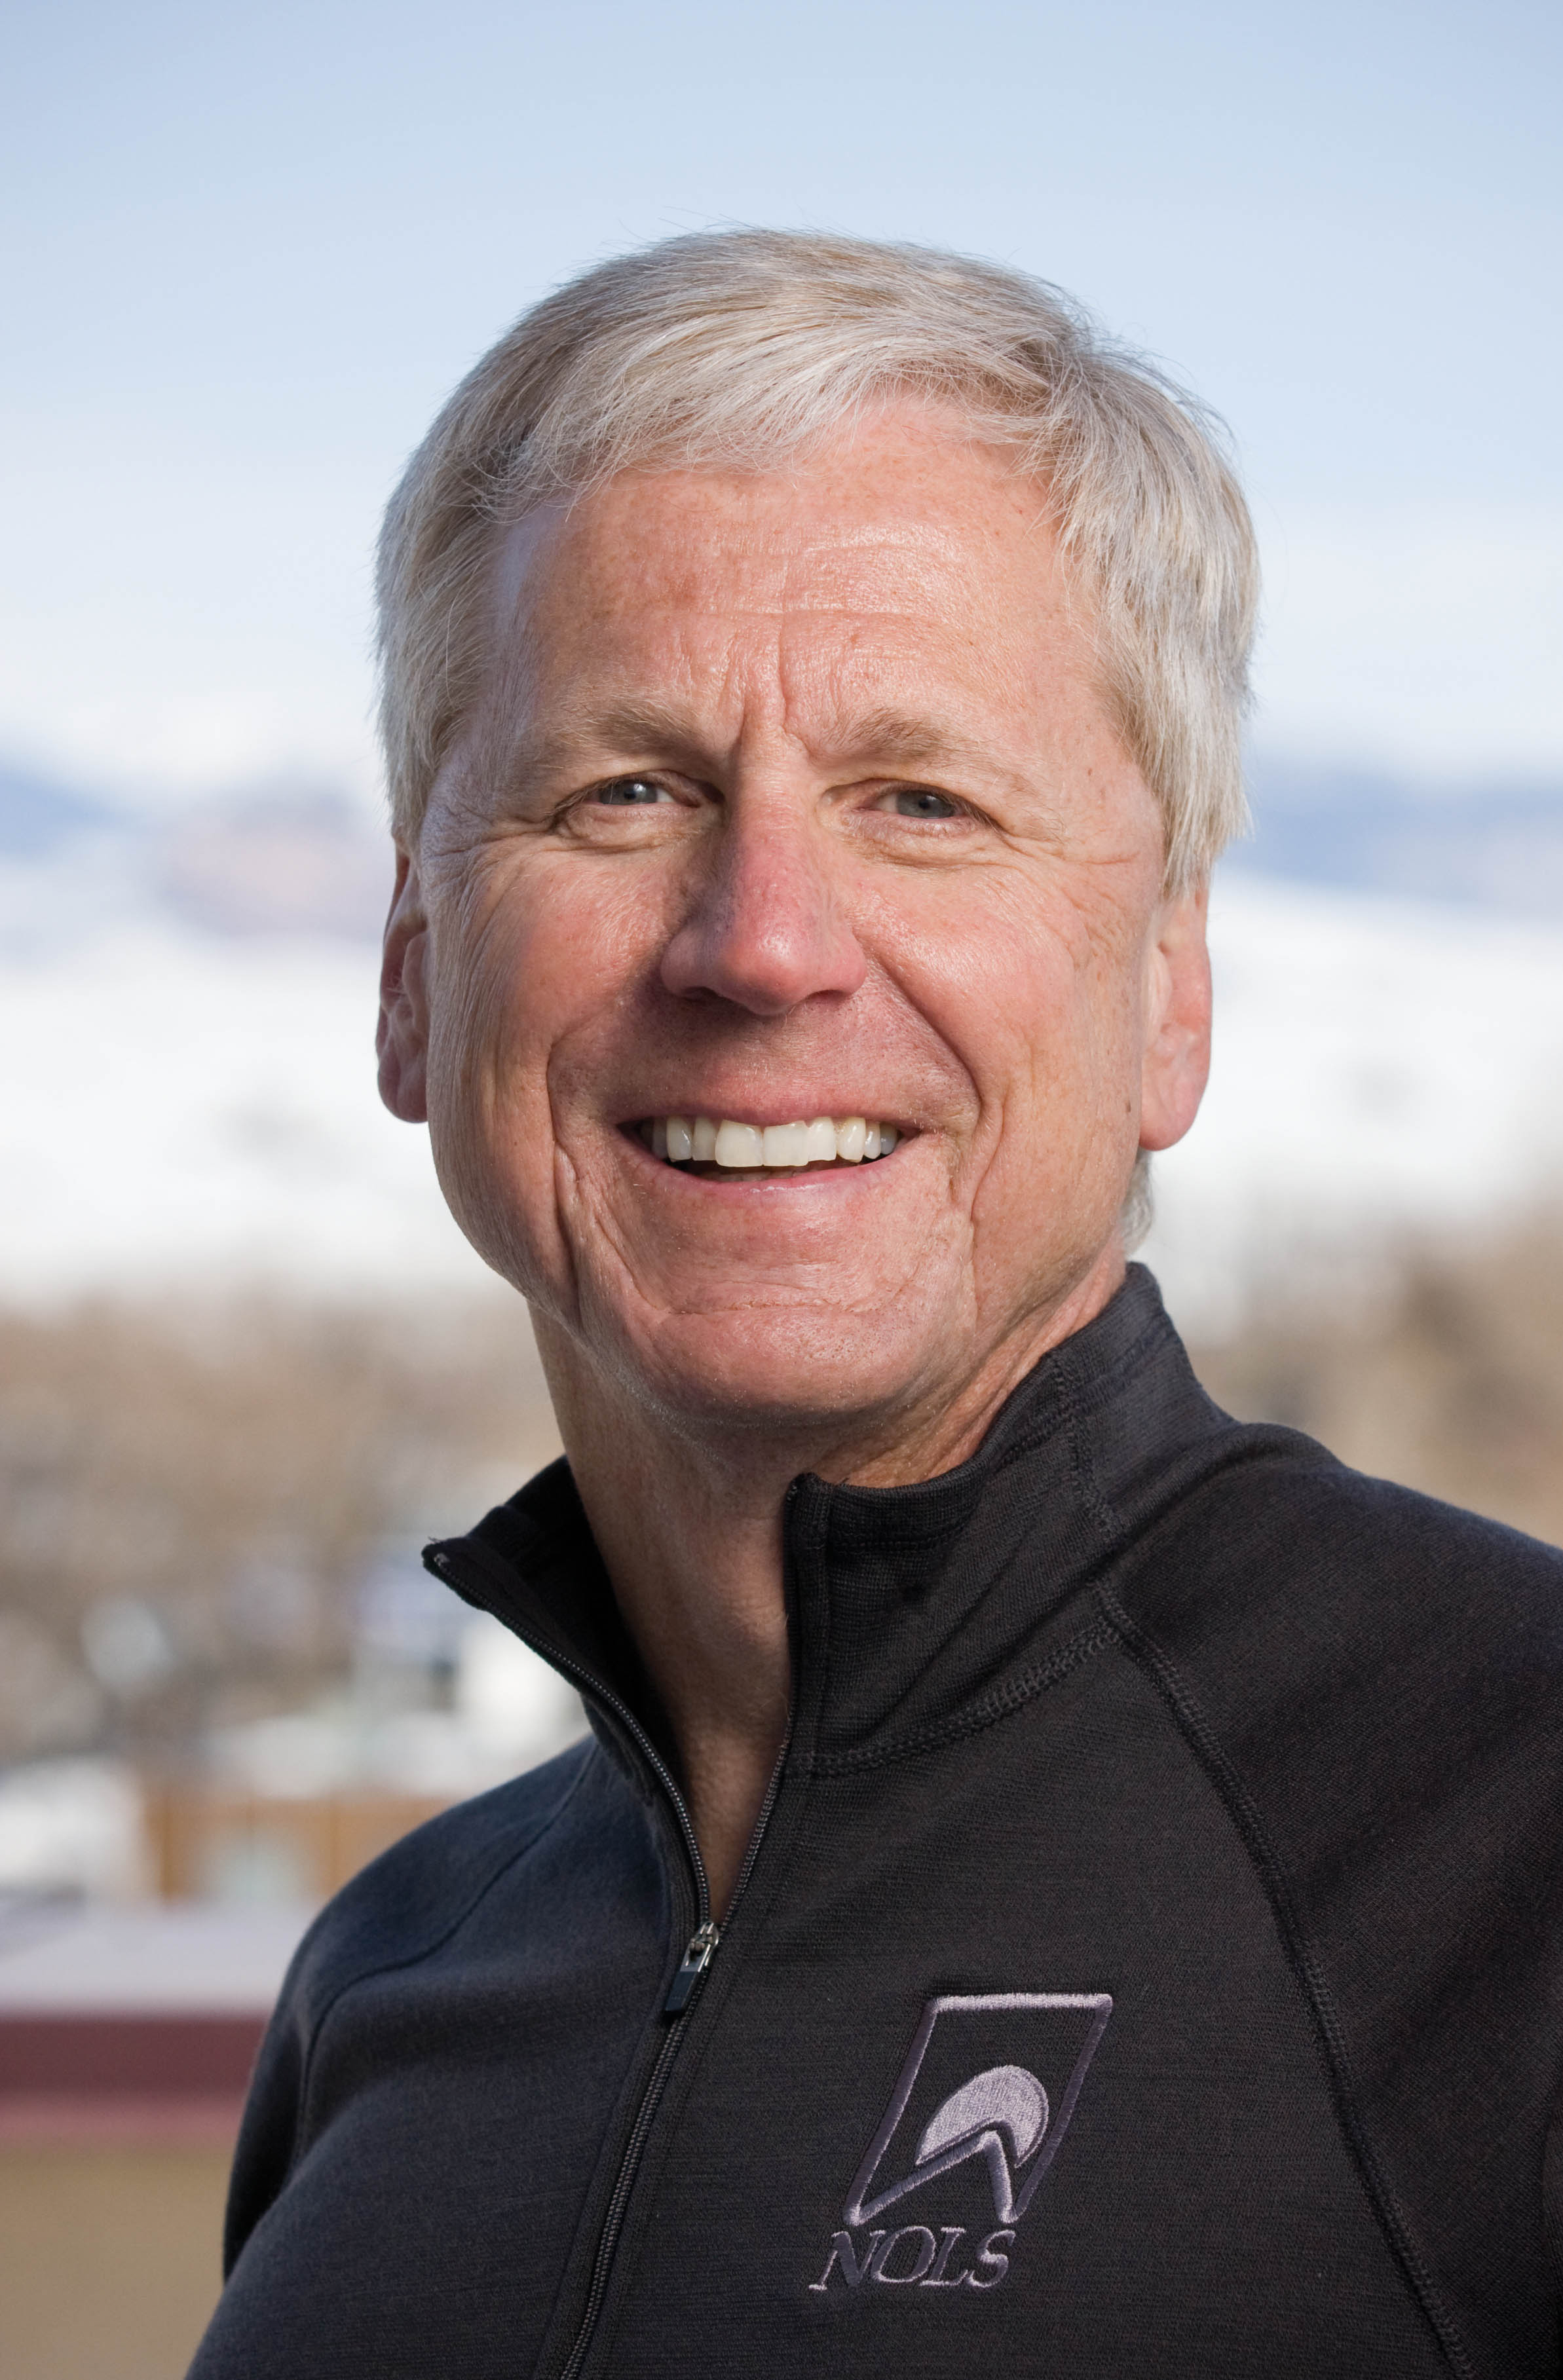 NOLS Executive Director John Gans will accept this honor during a celebration at the Winter Outdoor Retailer Winter Market Jan. 20.